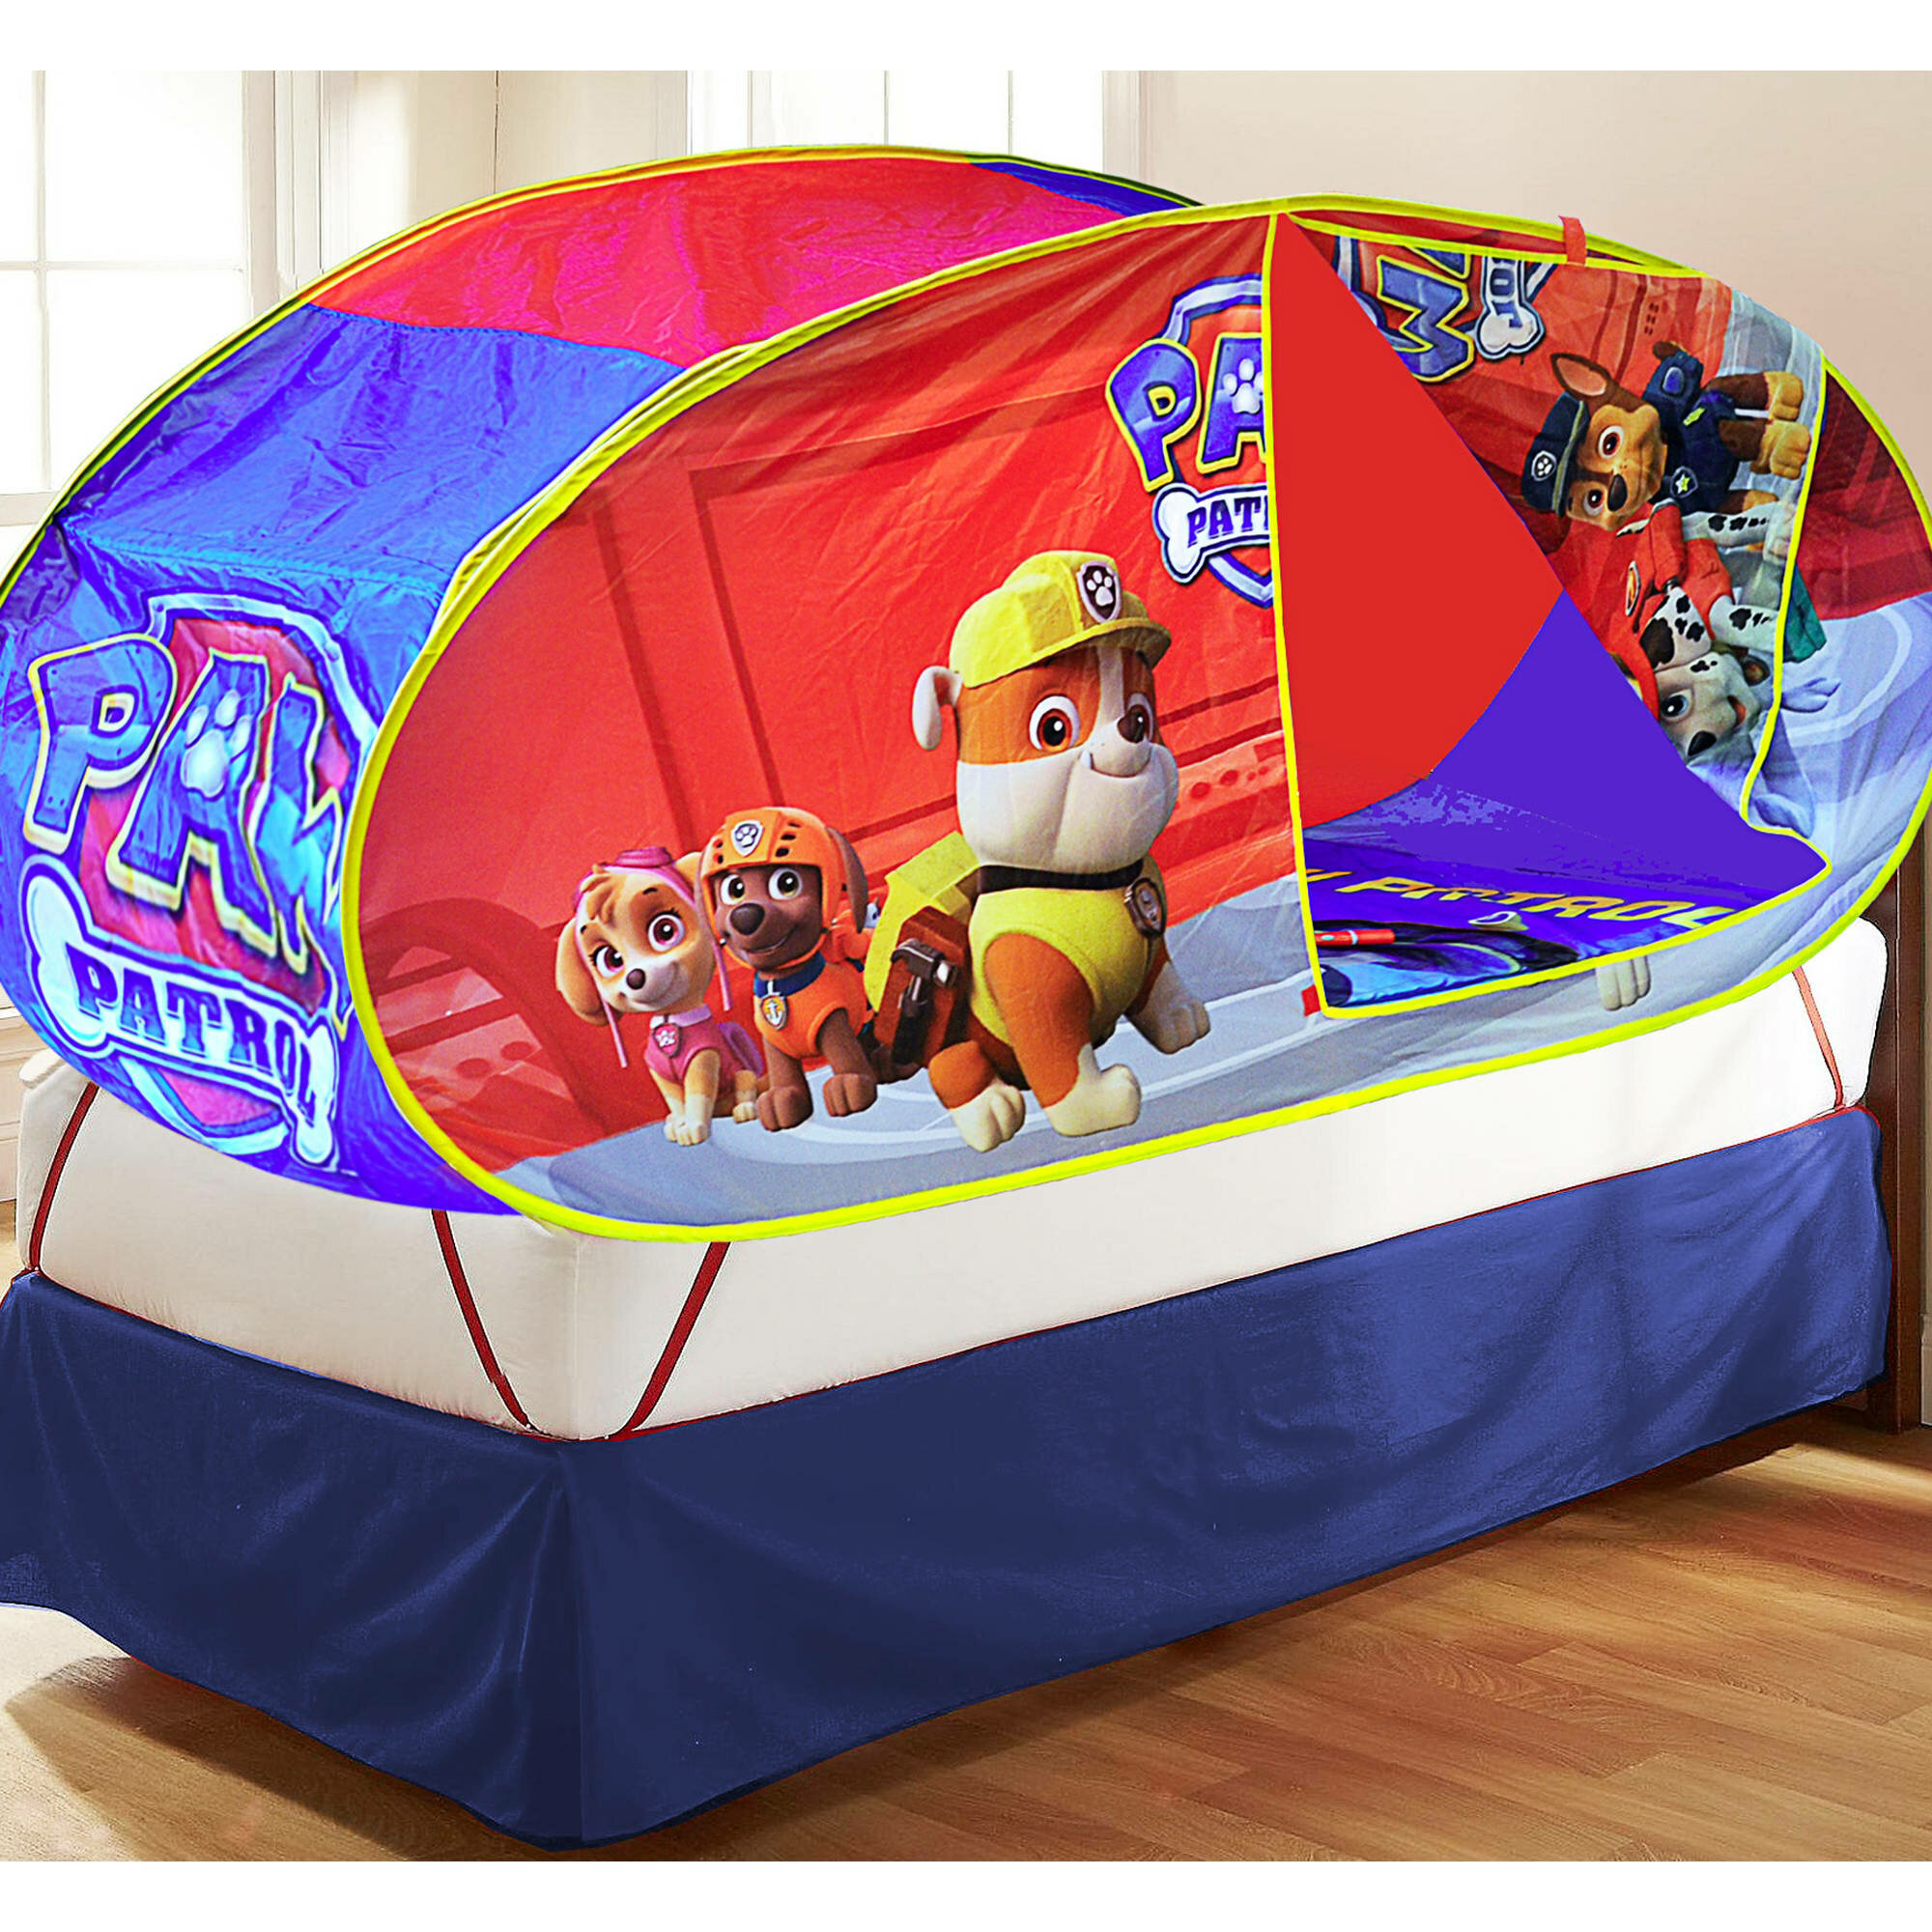 buy online 37a07 3471b Paw Patrol 4 Piece Play Tent